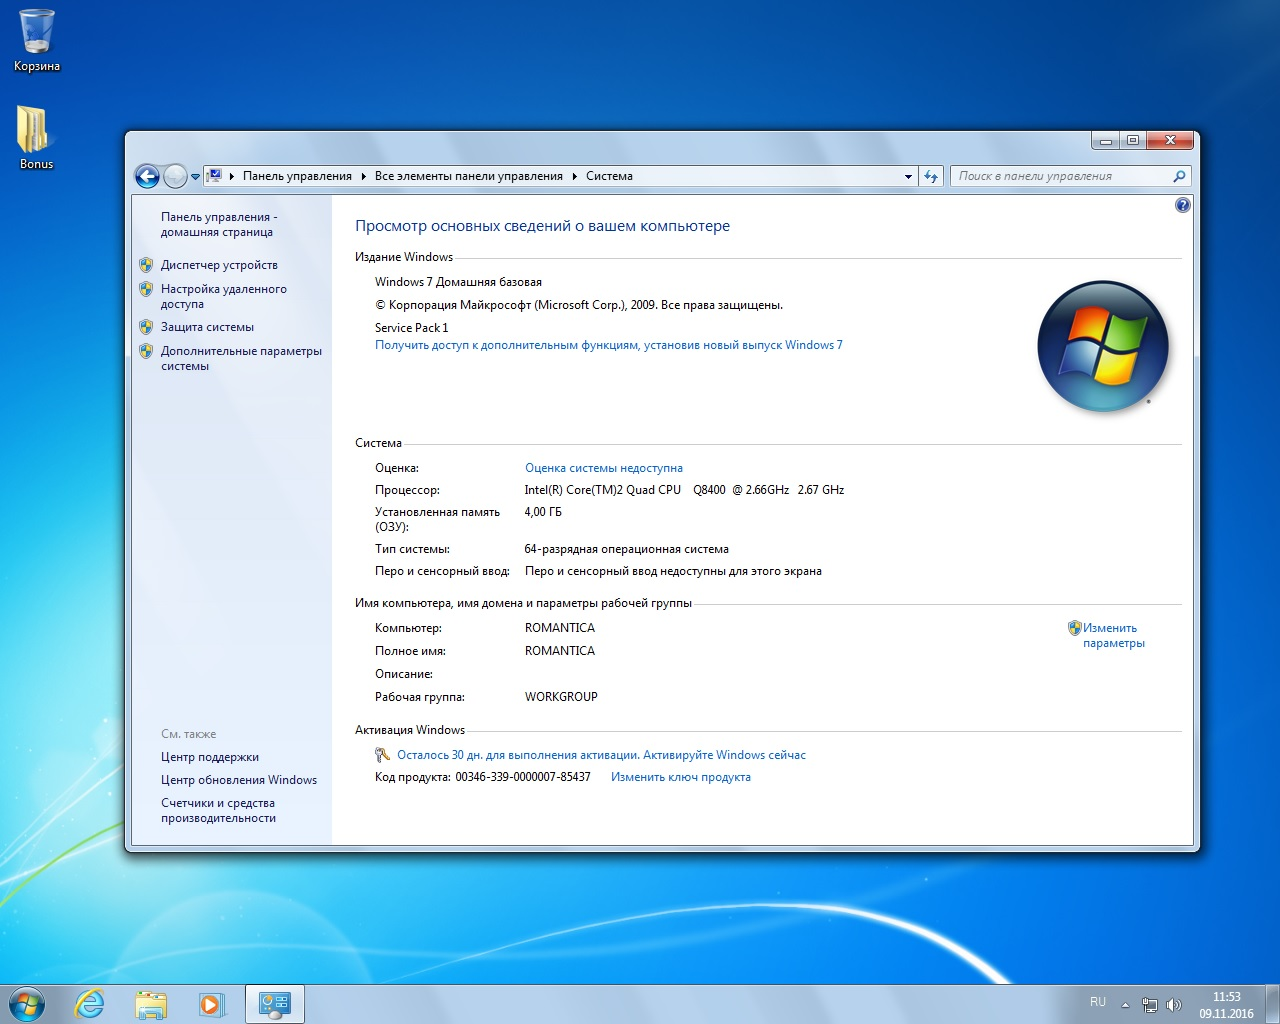 Win 7 Aio sp1